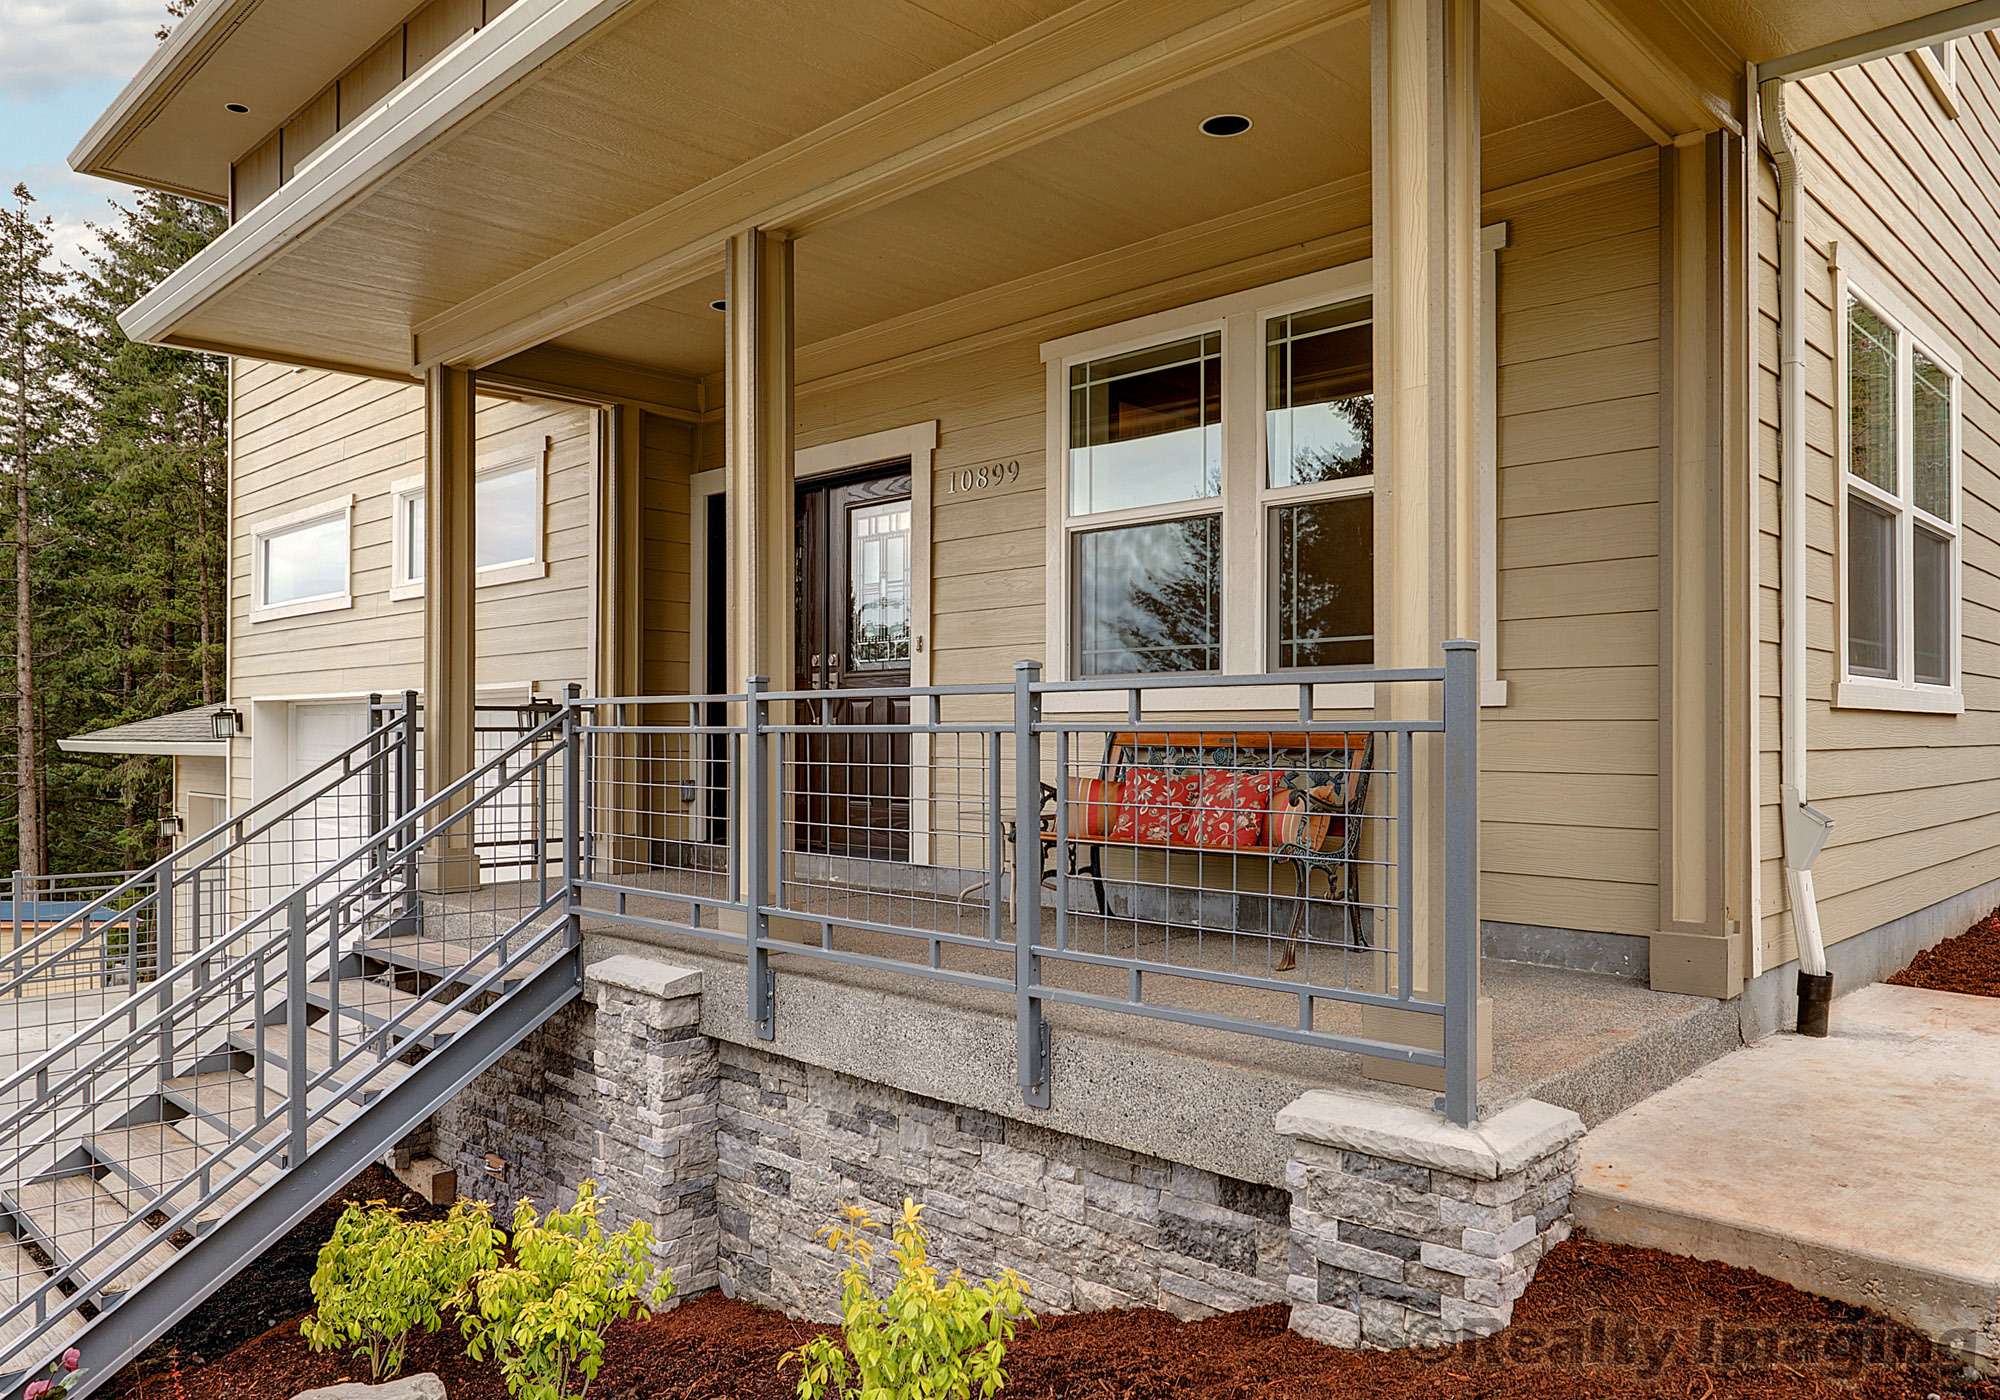 10899 Se 104th Ave, Happy Valley, OR - USA (photo 3)